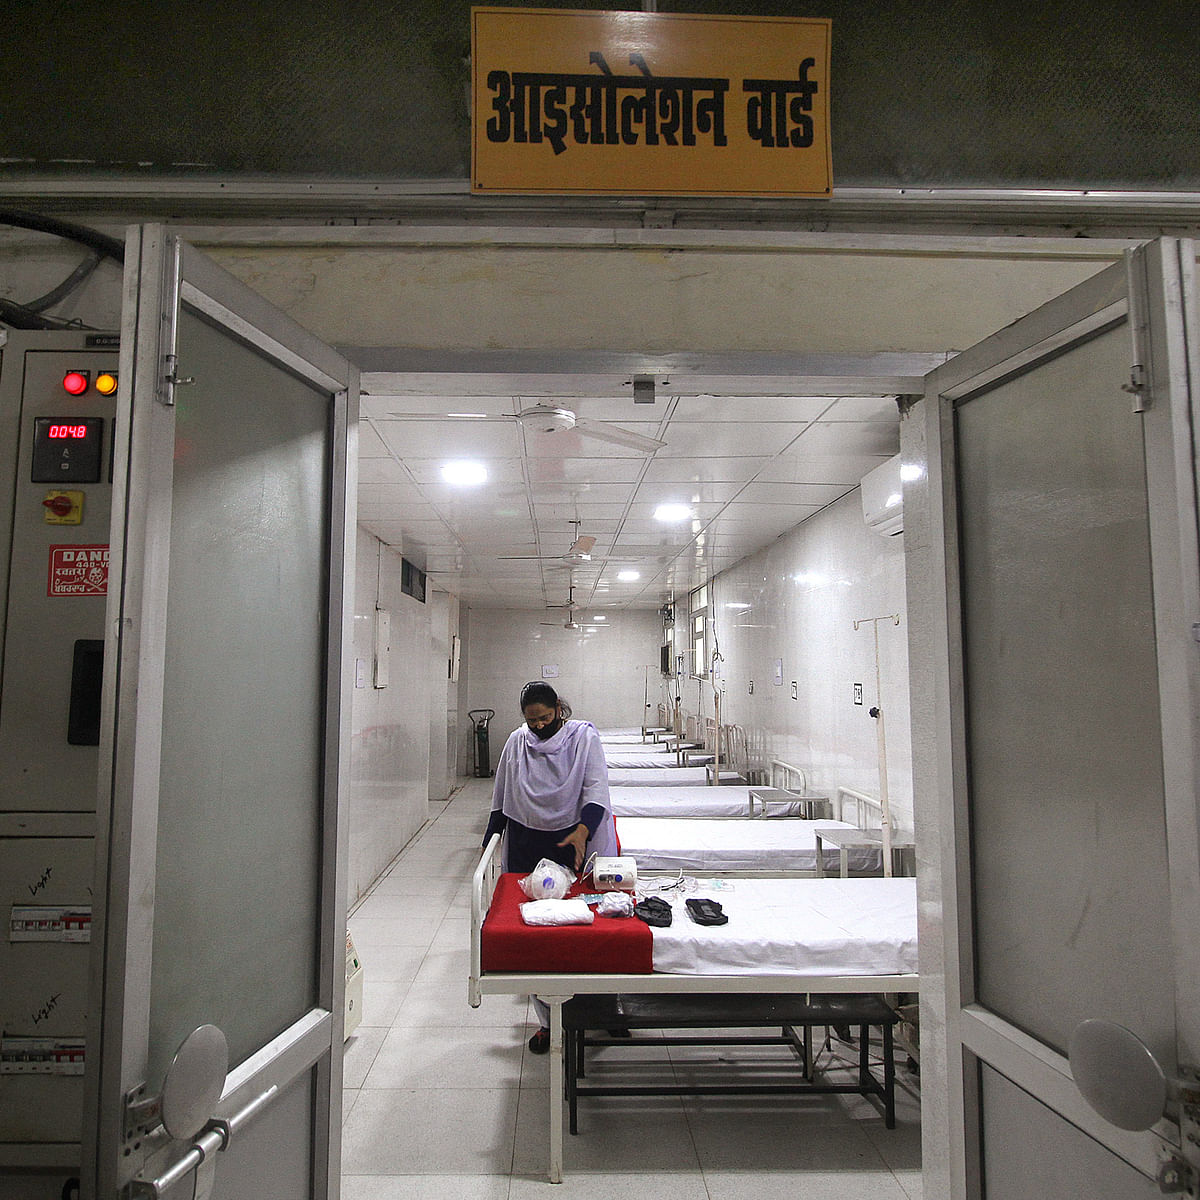 Latest news on coronavirus in India: Top ten updates from Modi giving up Holi to B'wood stars cancelling multi-city tours